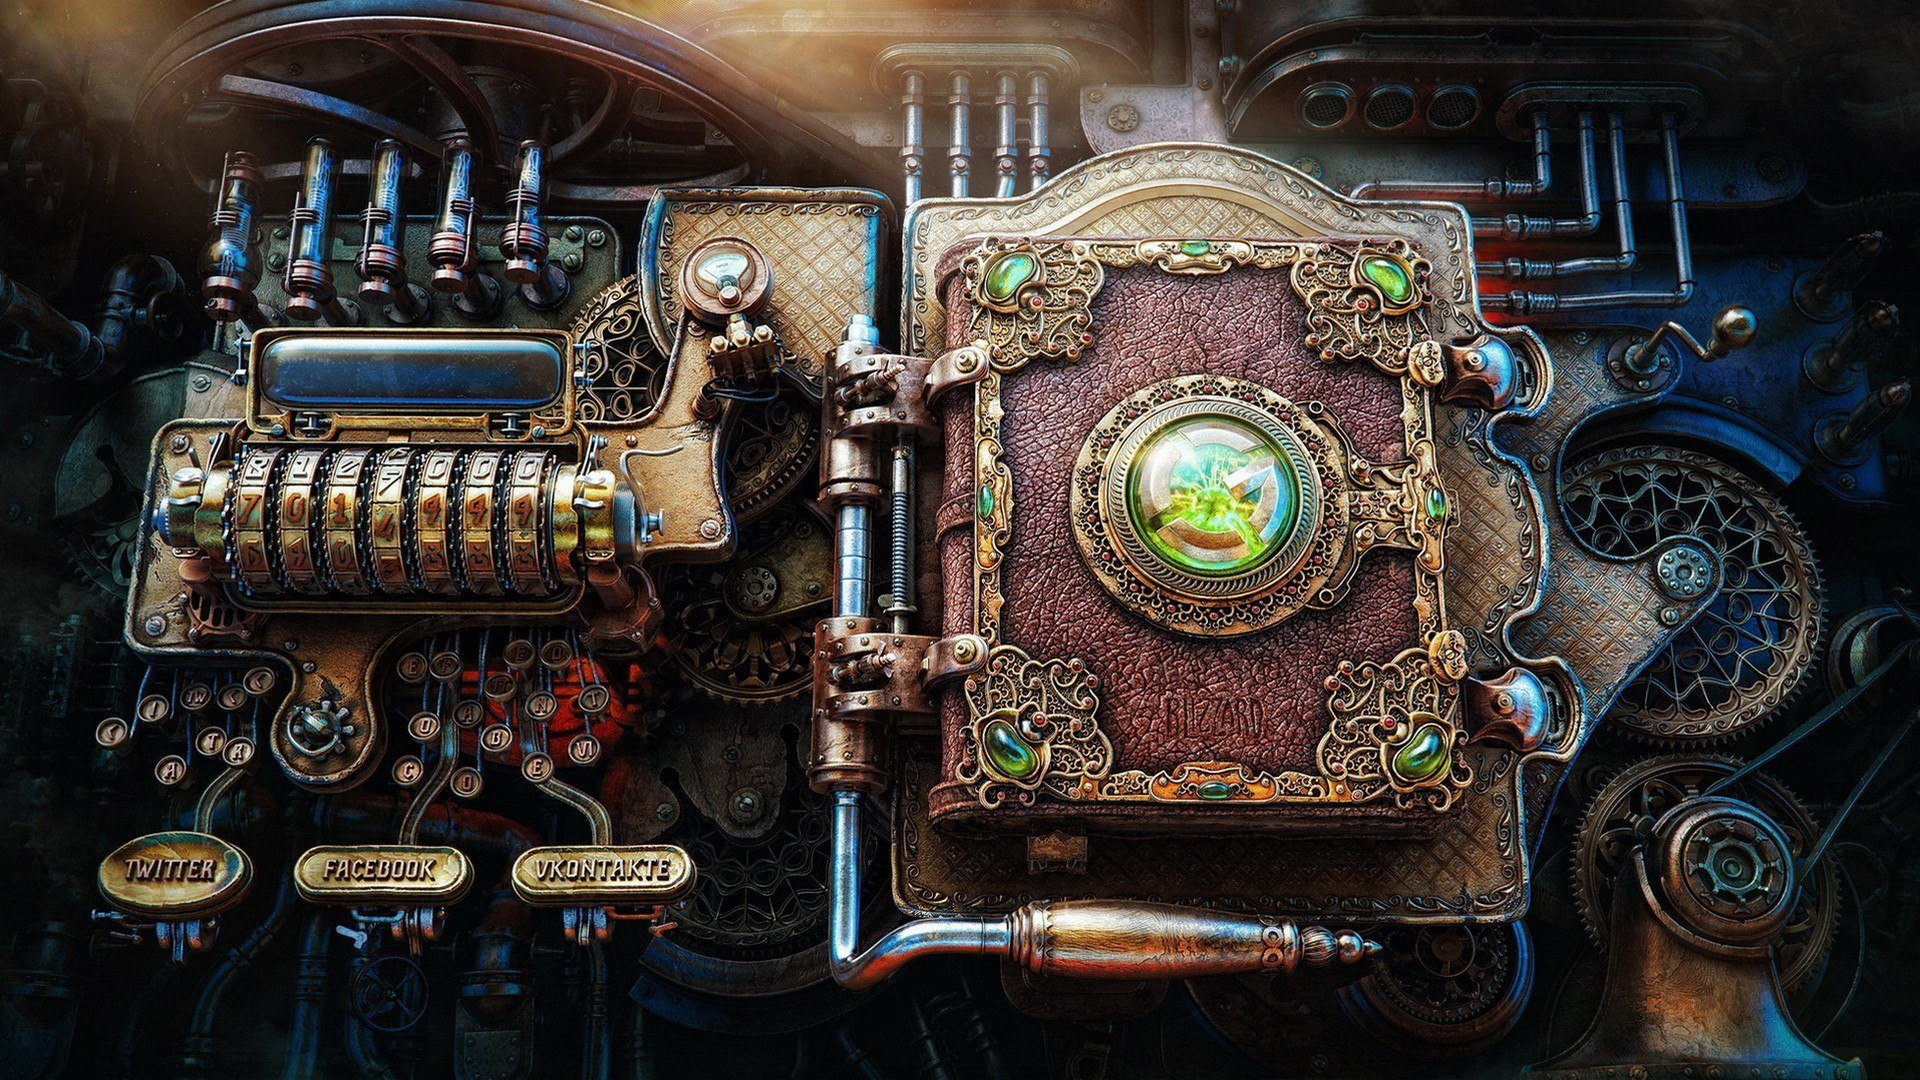 Steampunk computer panel wallpapers and images   wallpapers pictures 1920x1080